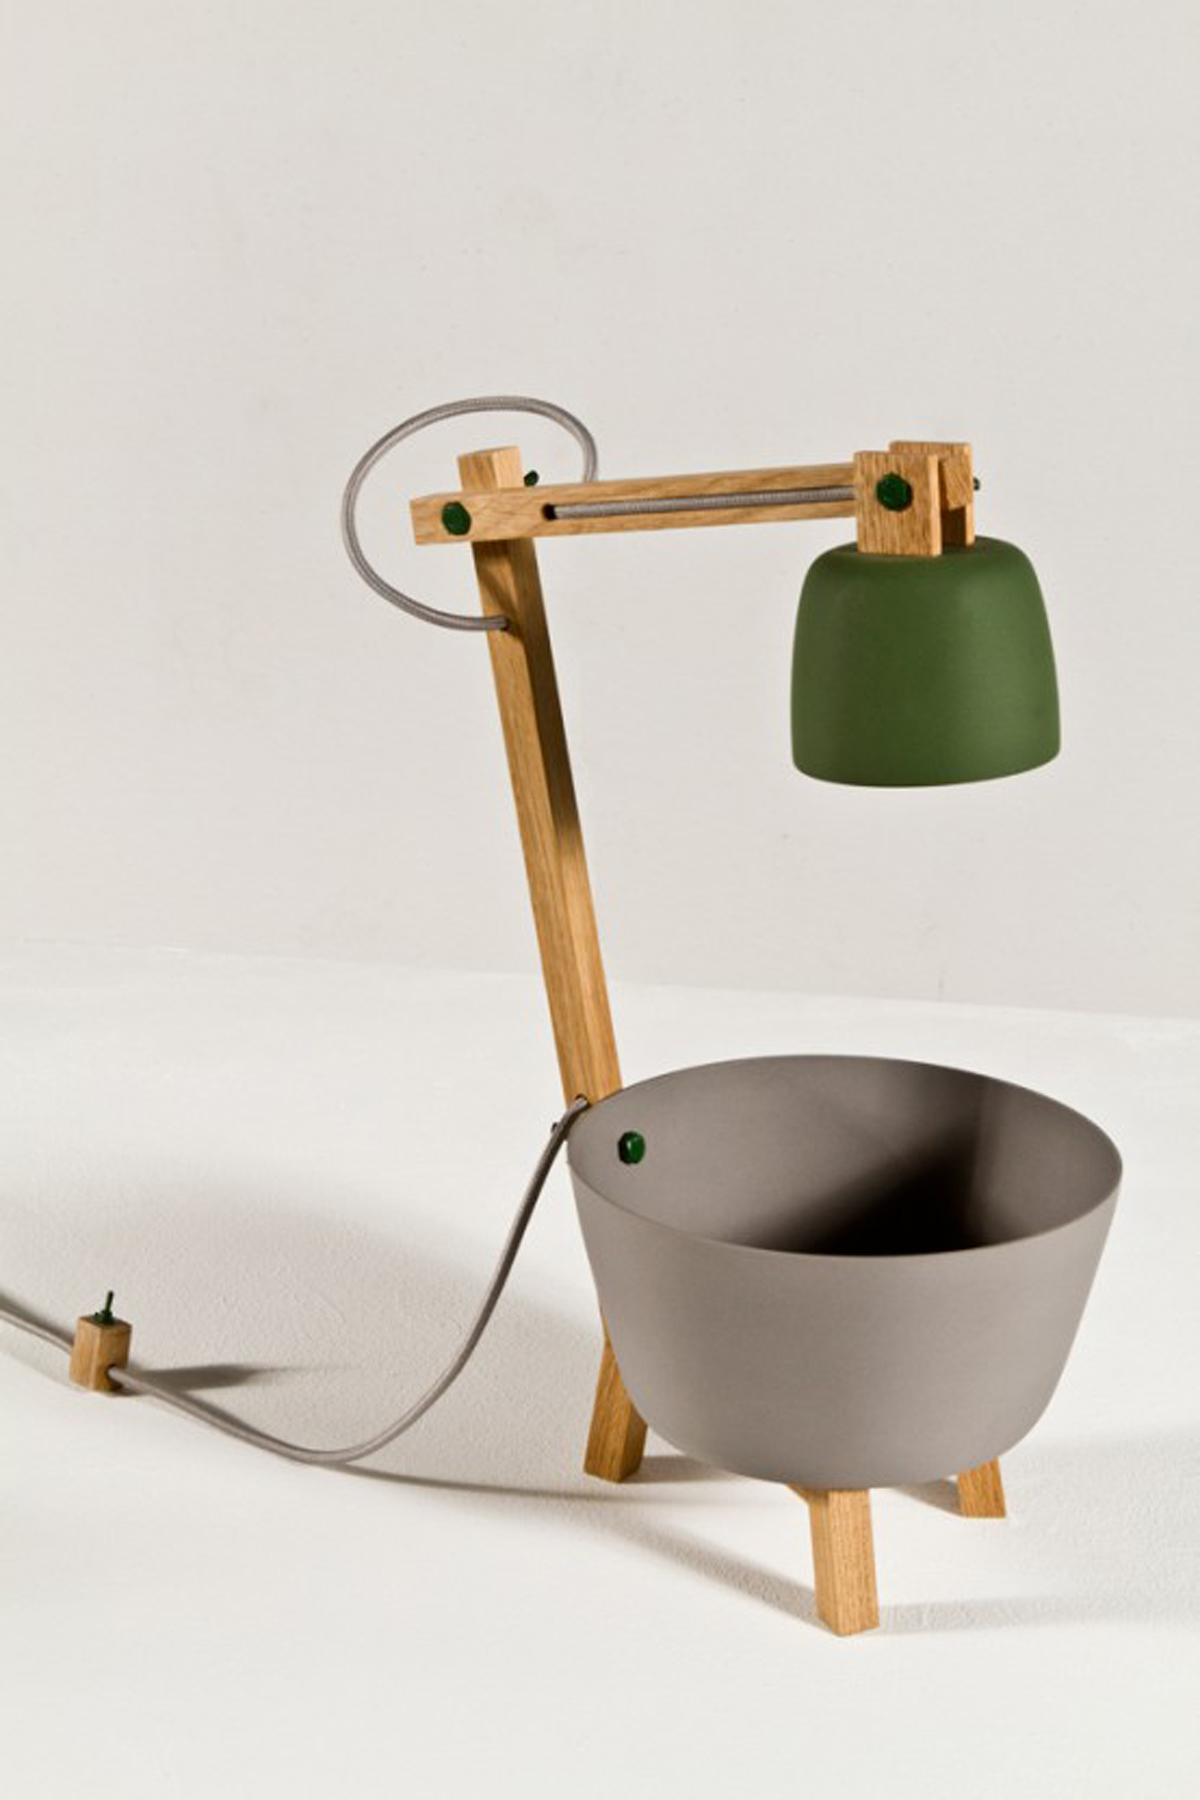 Innovative Table Lamp Designs by Daphna Isaacs - Iroonie.